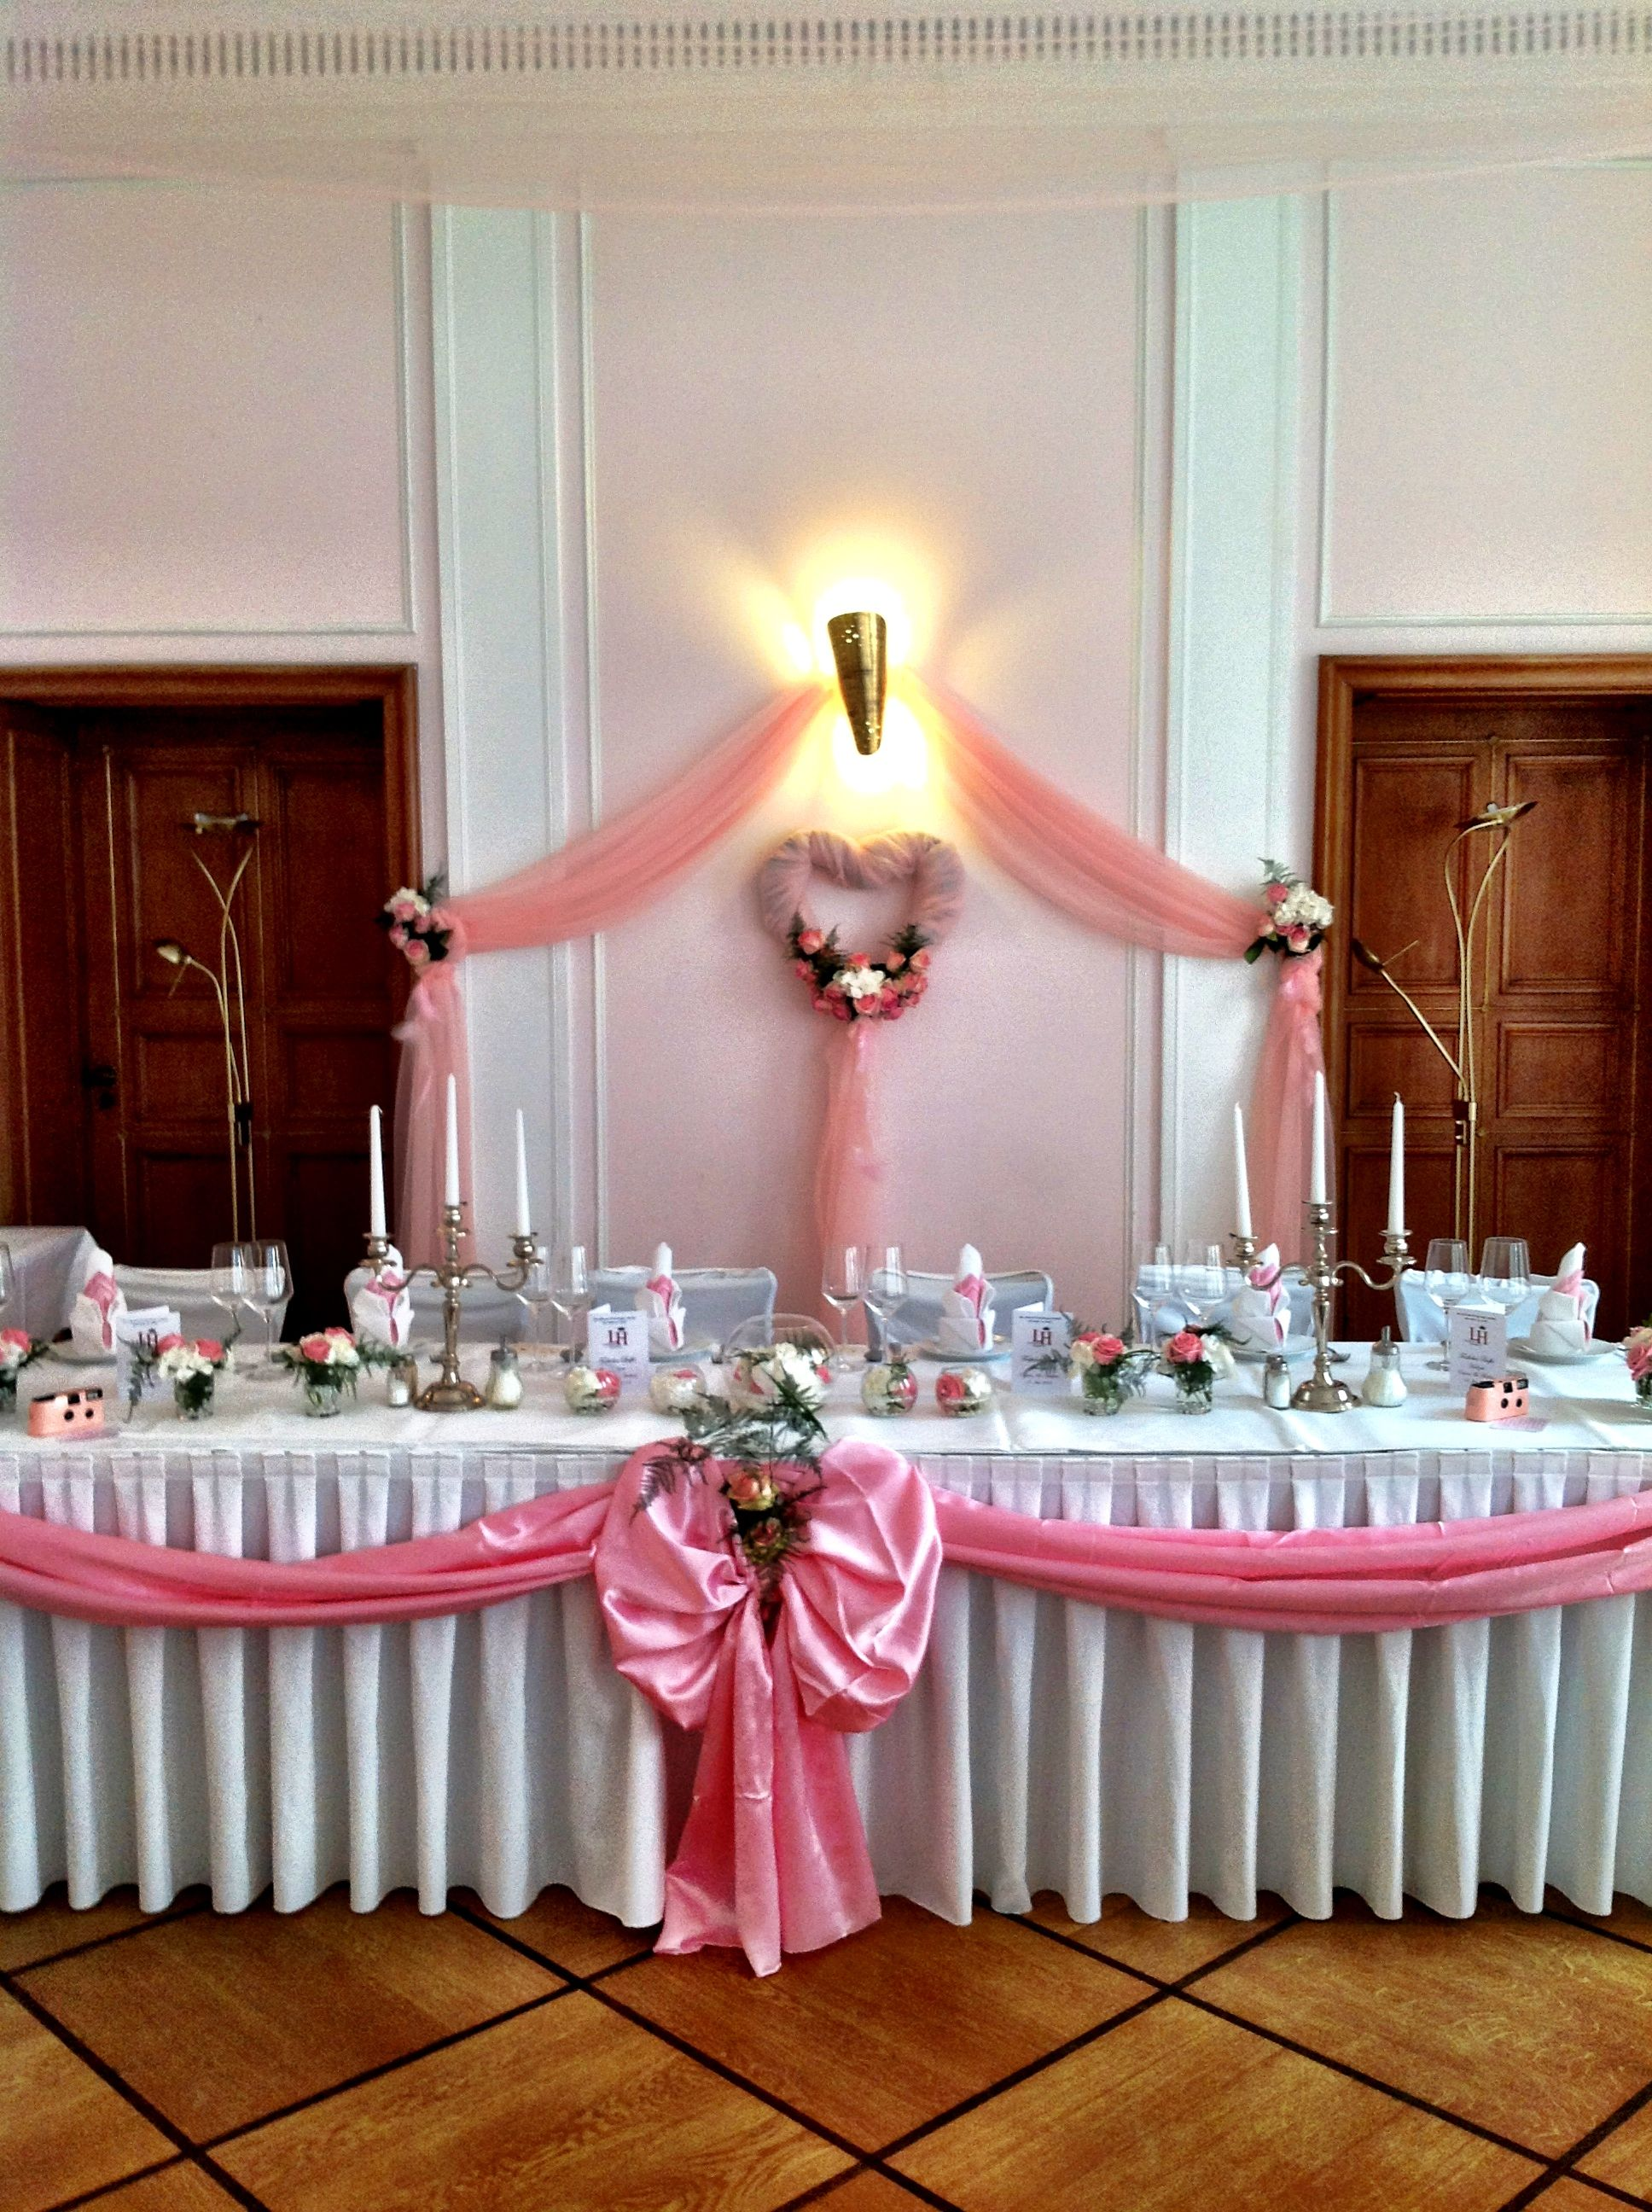 Wedding table decoration in pink and white made by princess dreams wedding table decoration in pink and white made by princess dreams junglespirit Image collections